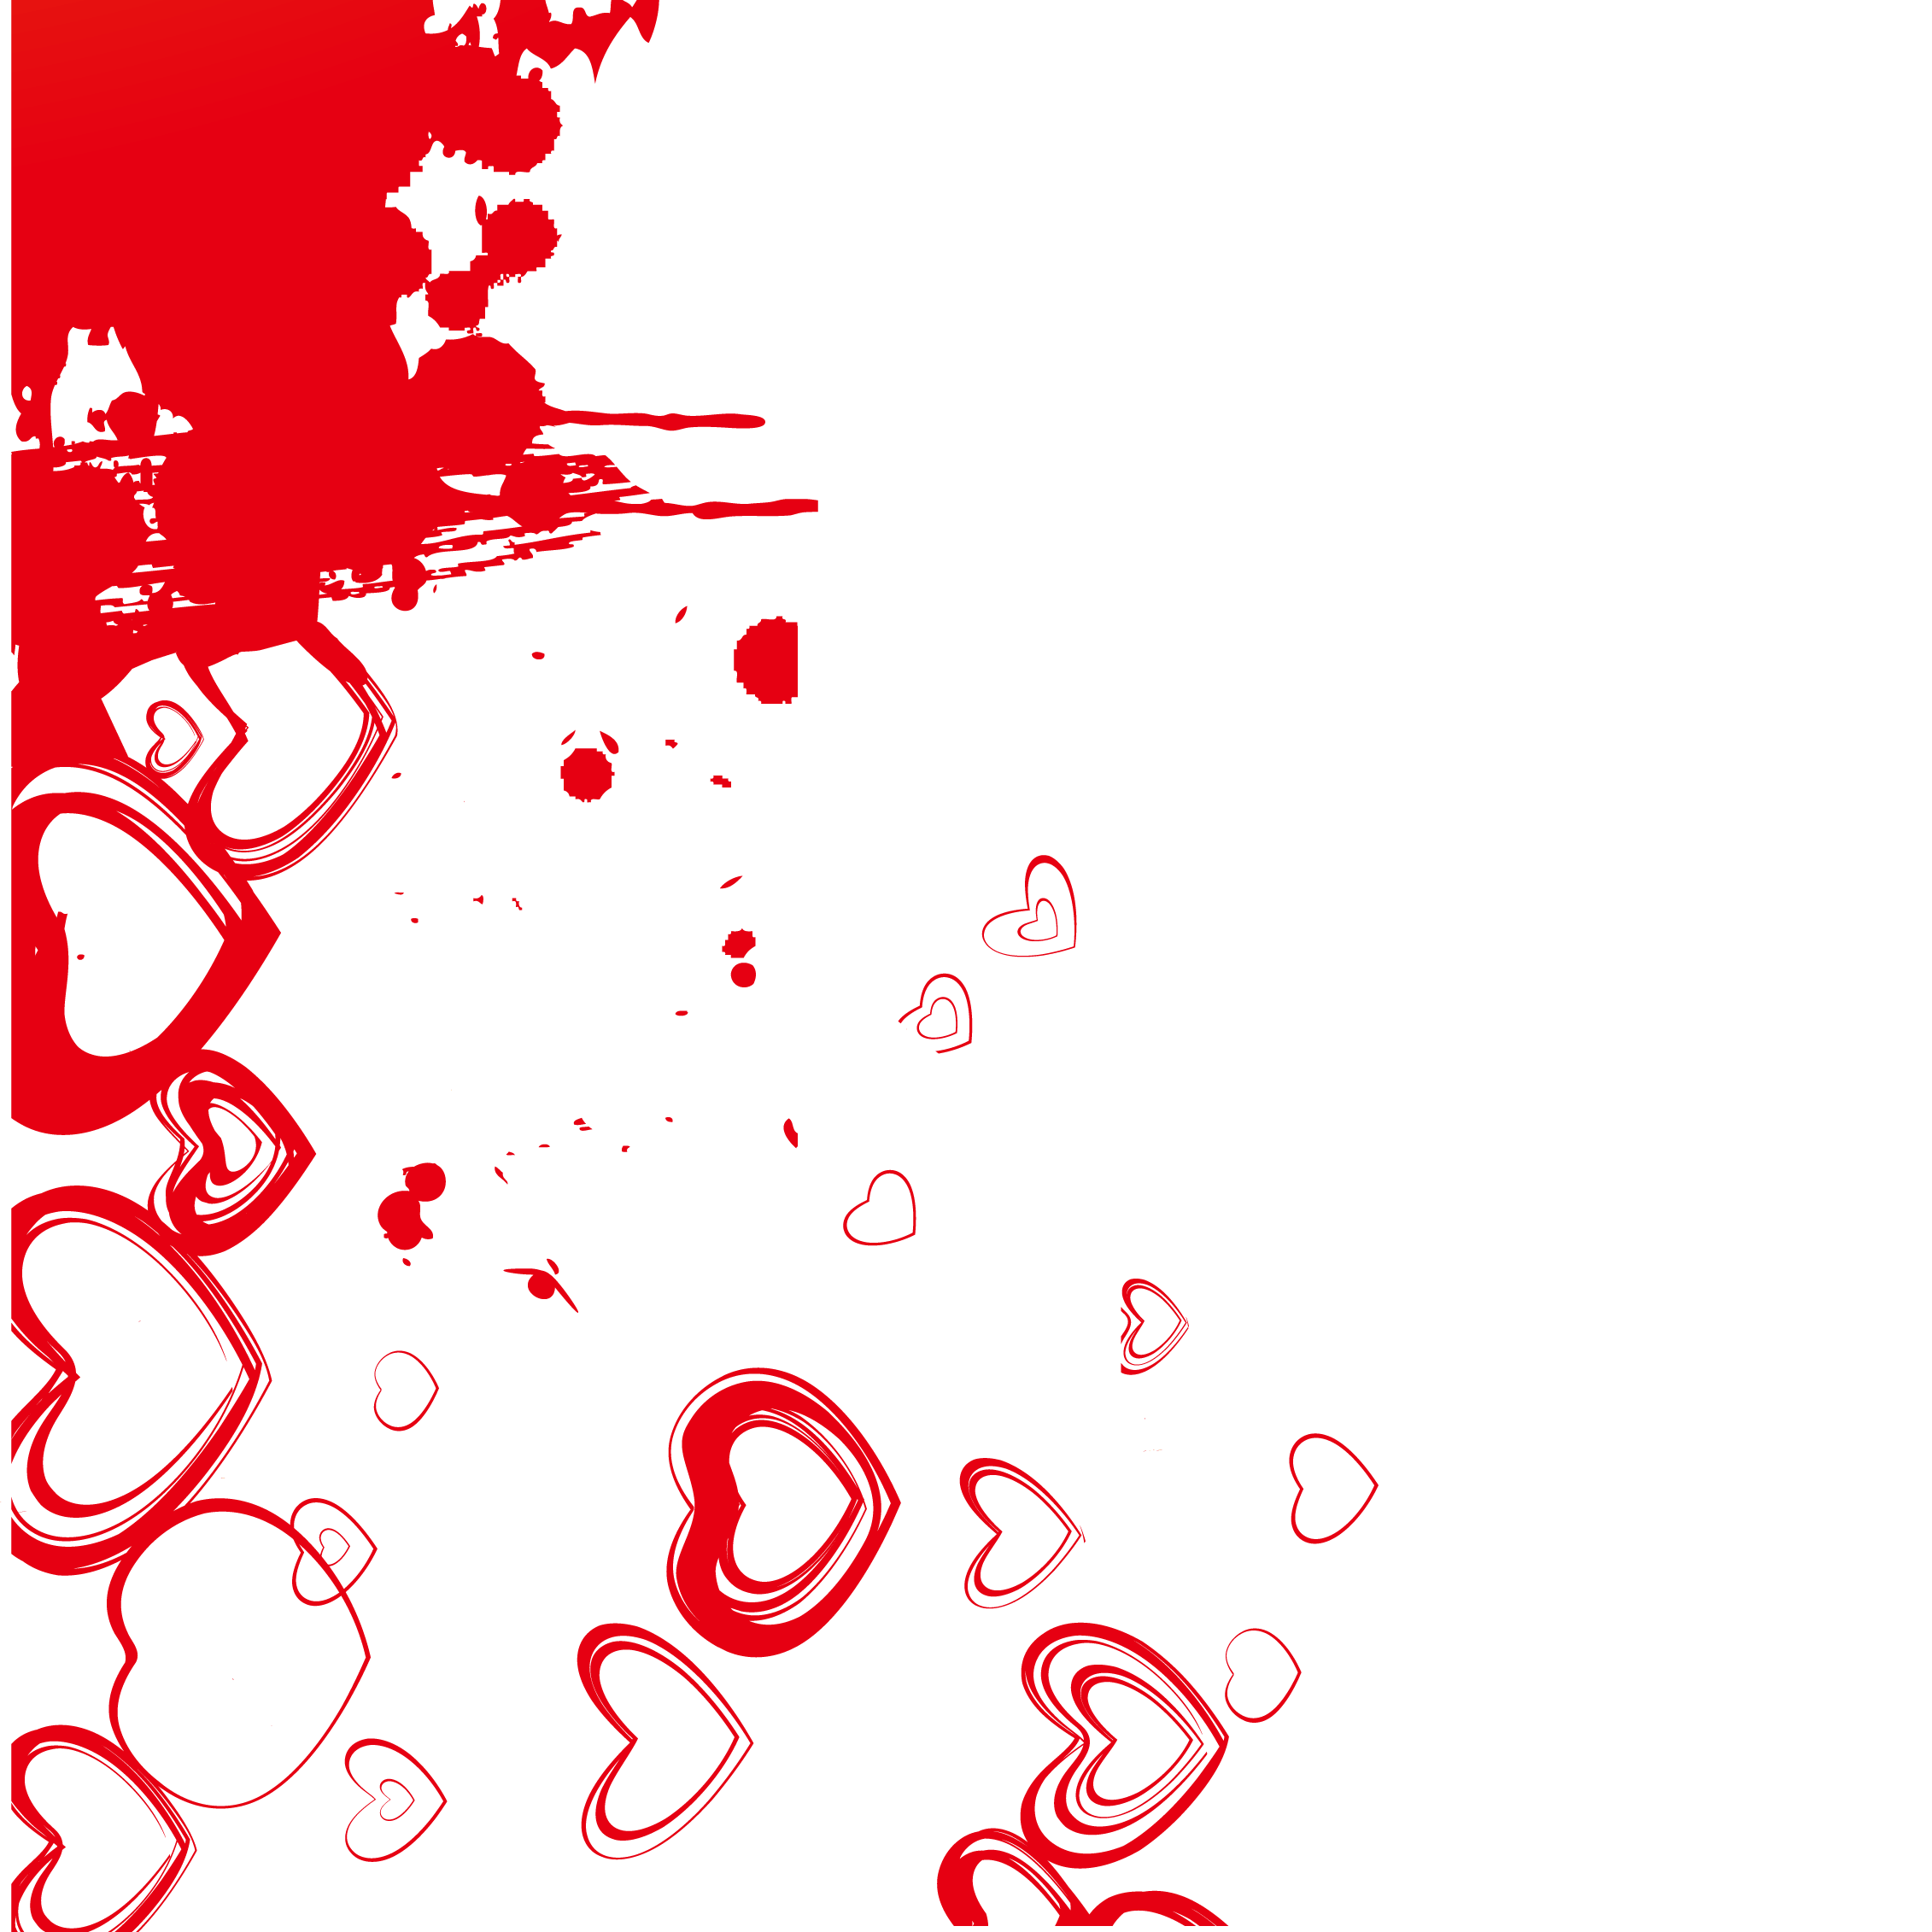 Red ink heart vector. Hearts background png